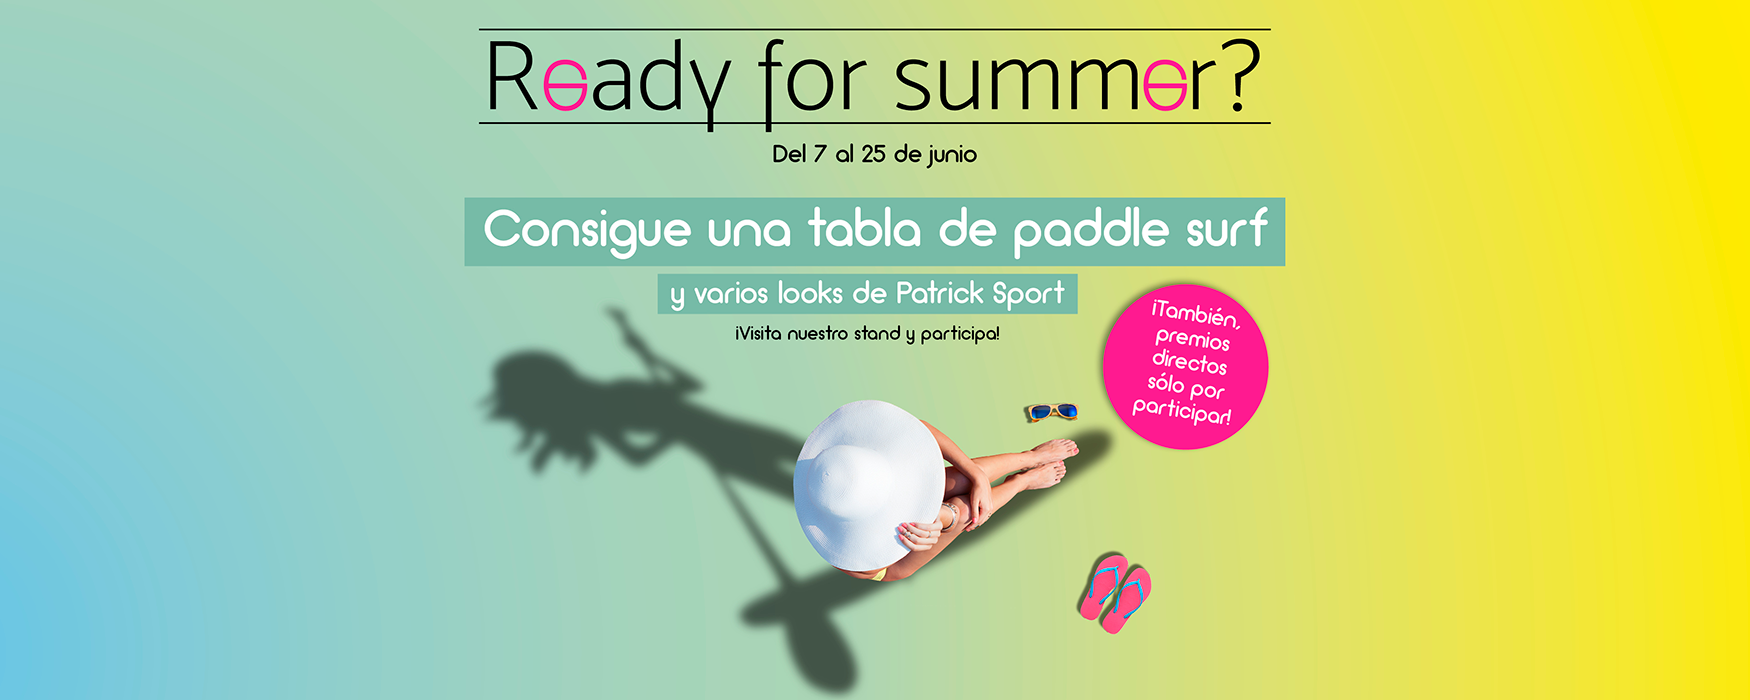 Cabecera-Web-Ready-for-Summer